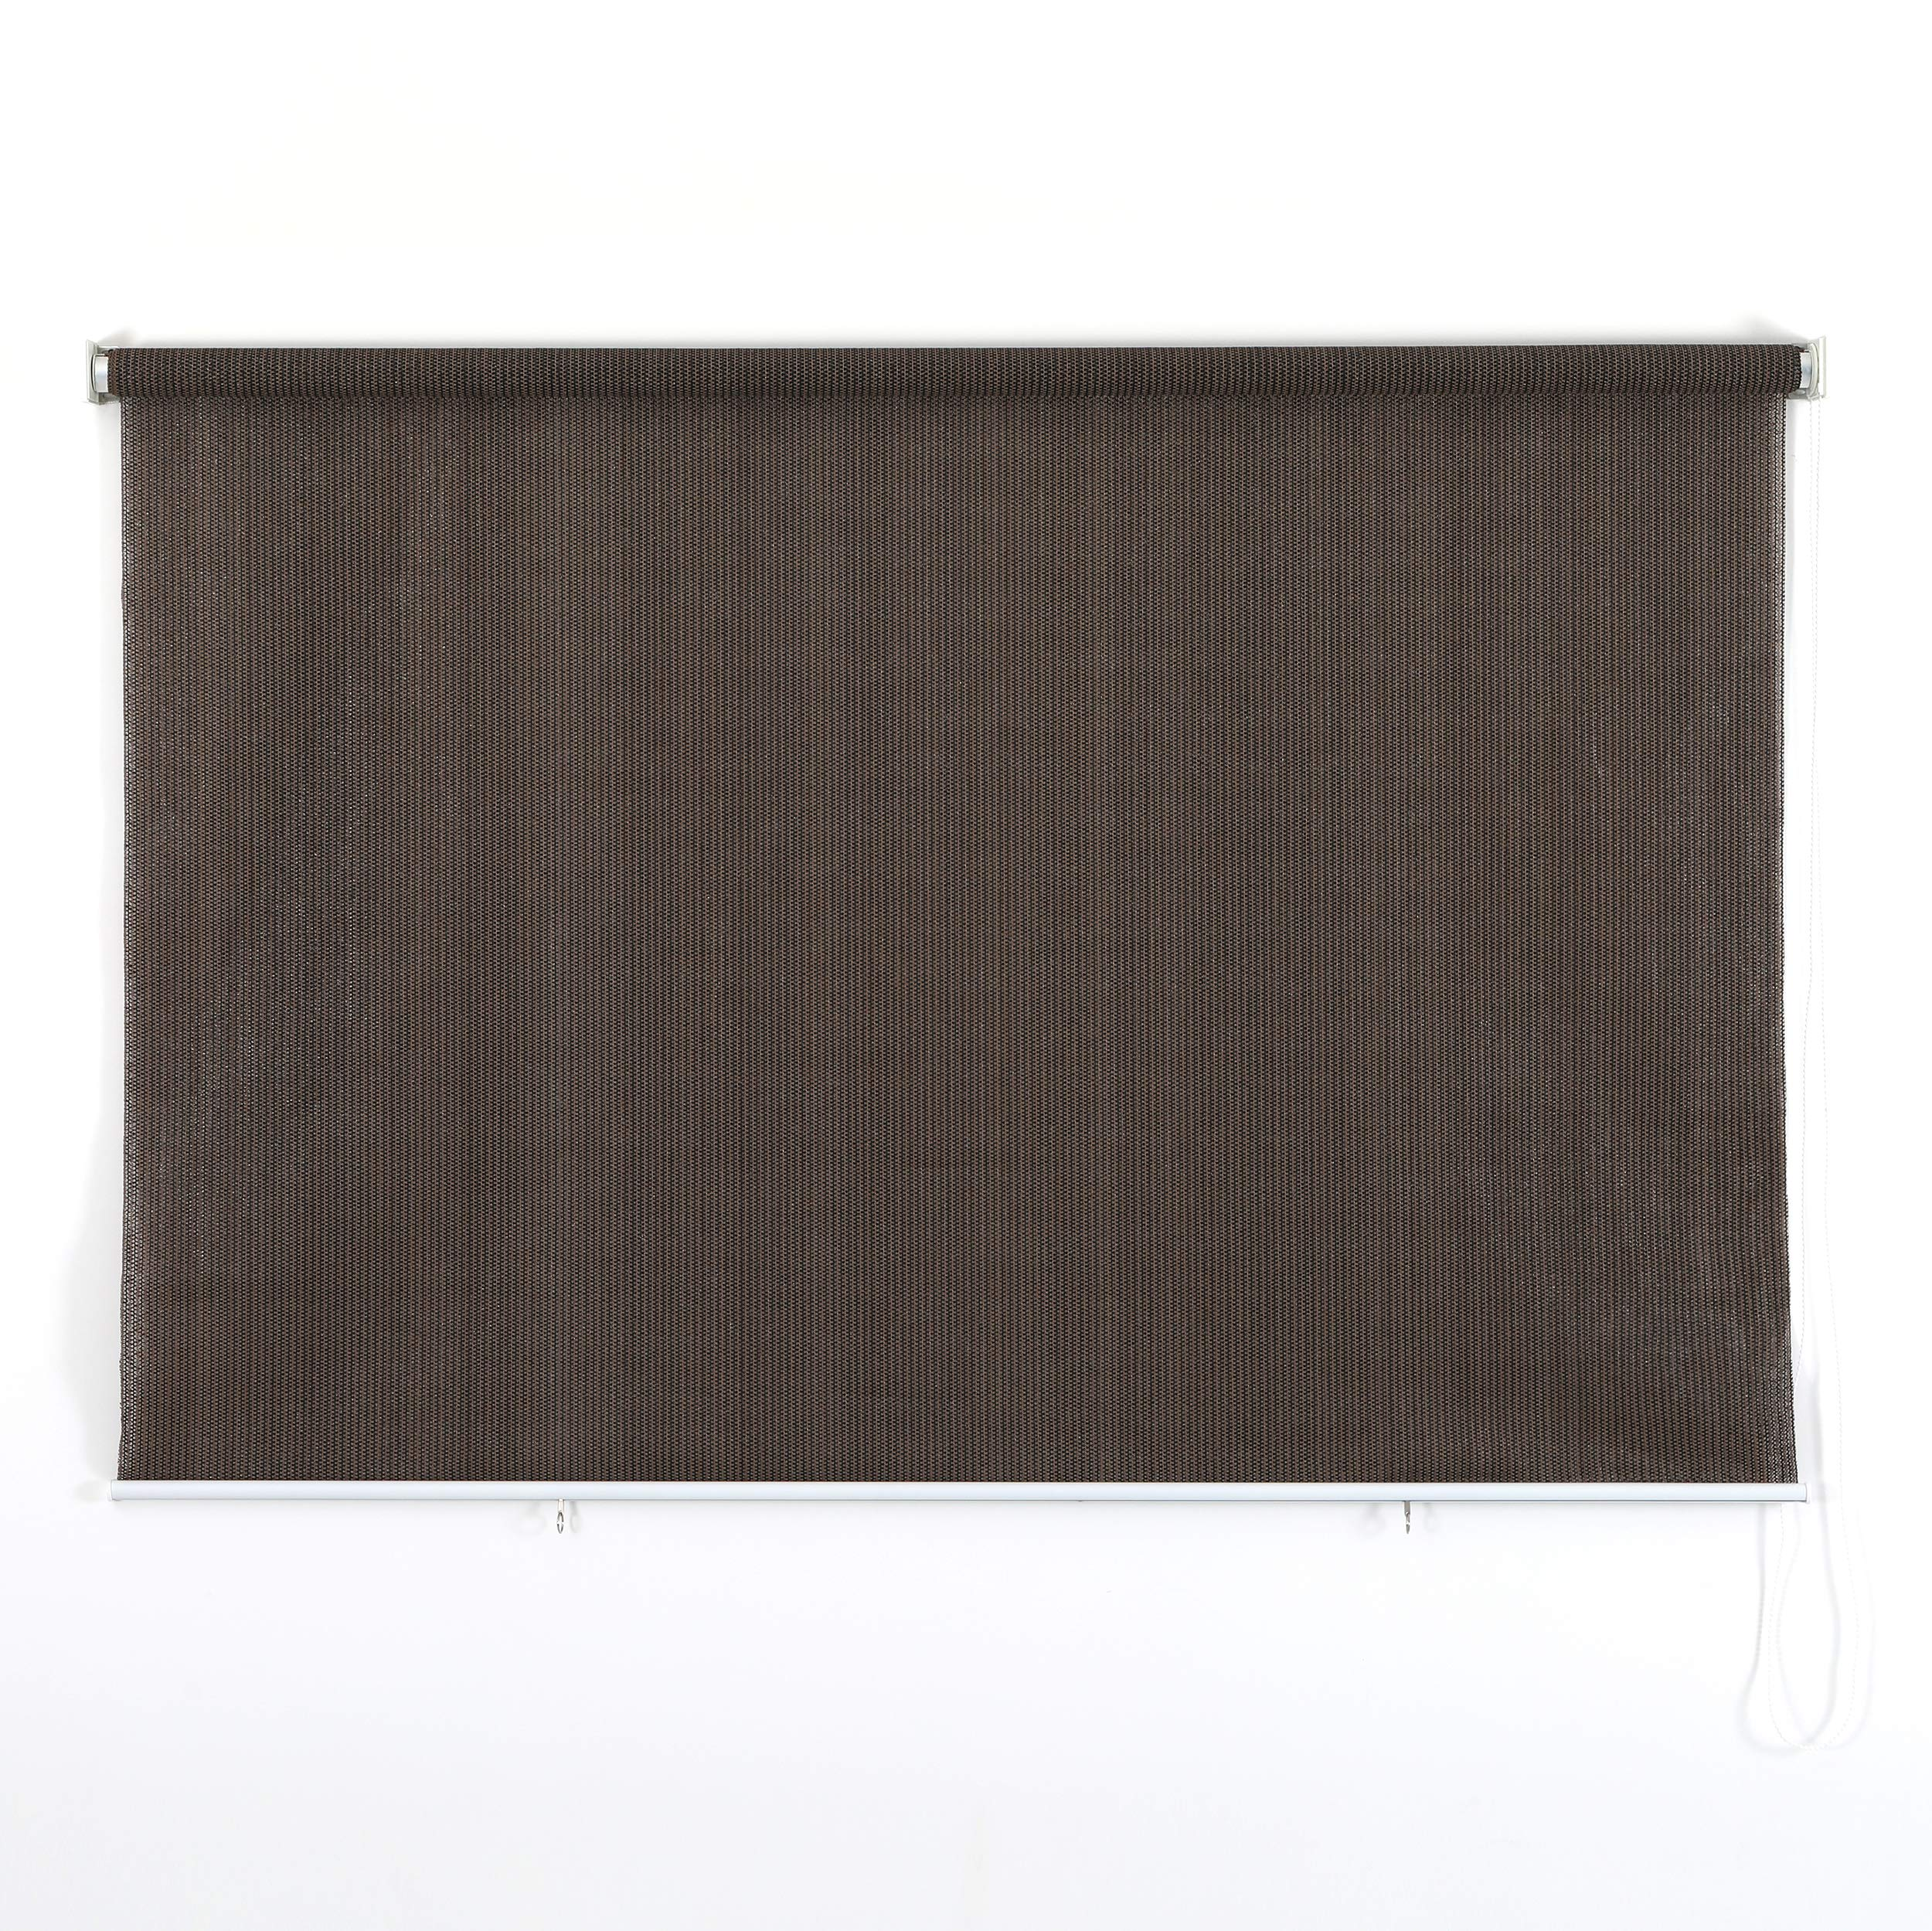 PHI VILLA Outdoor Patio Sun Shade Roller Shade 8ft by 8ft Coffee